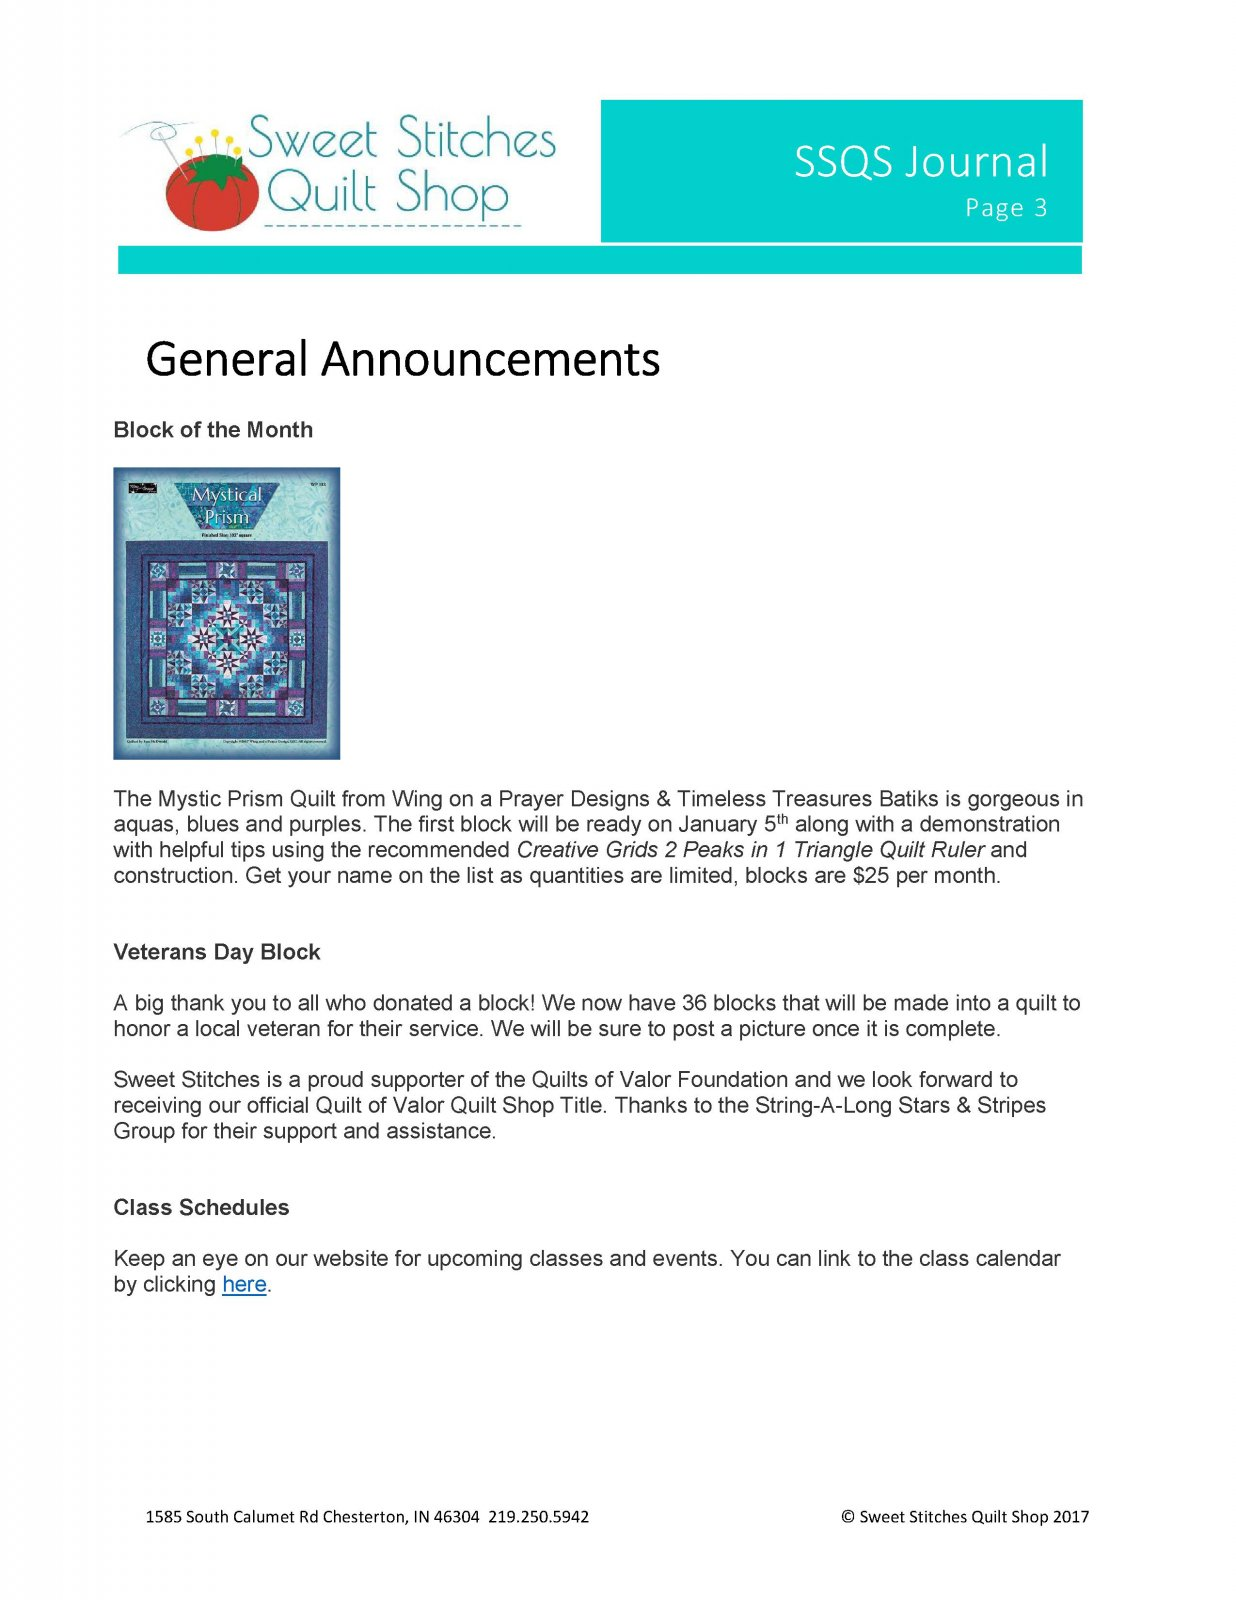 Sweet Stitches Quilt Shop Newsletter Page 3